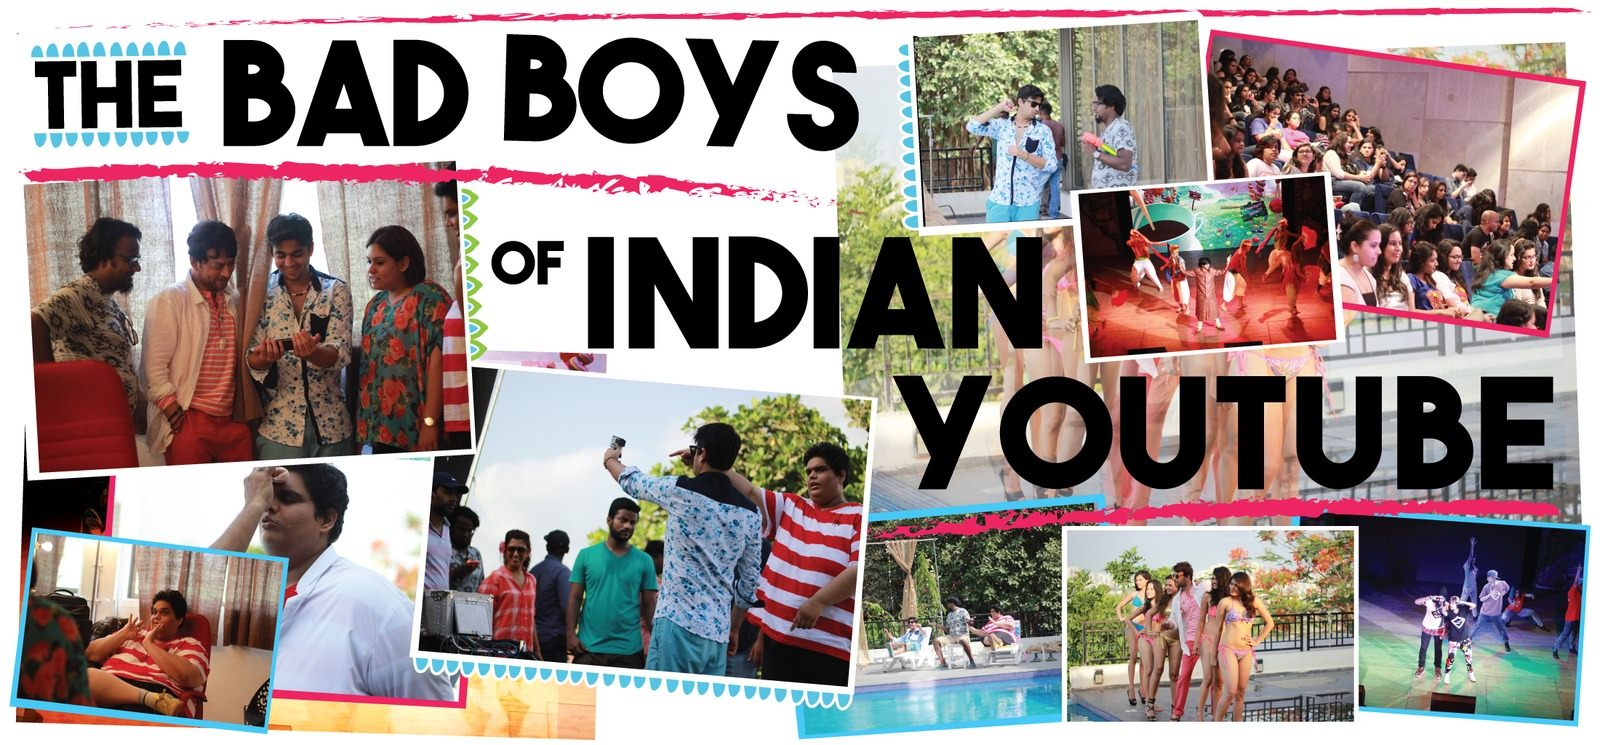 The Bad Boys Of Indian YouTube